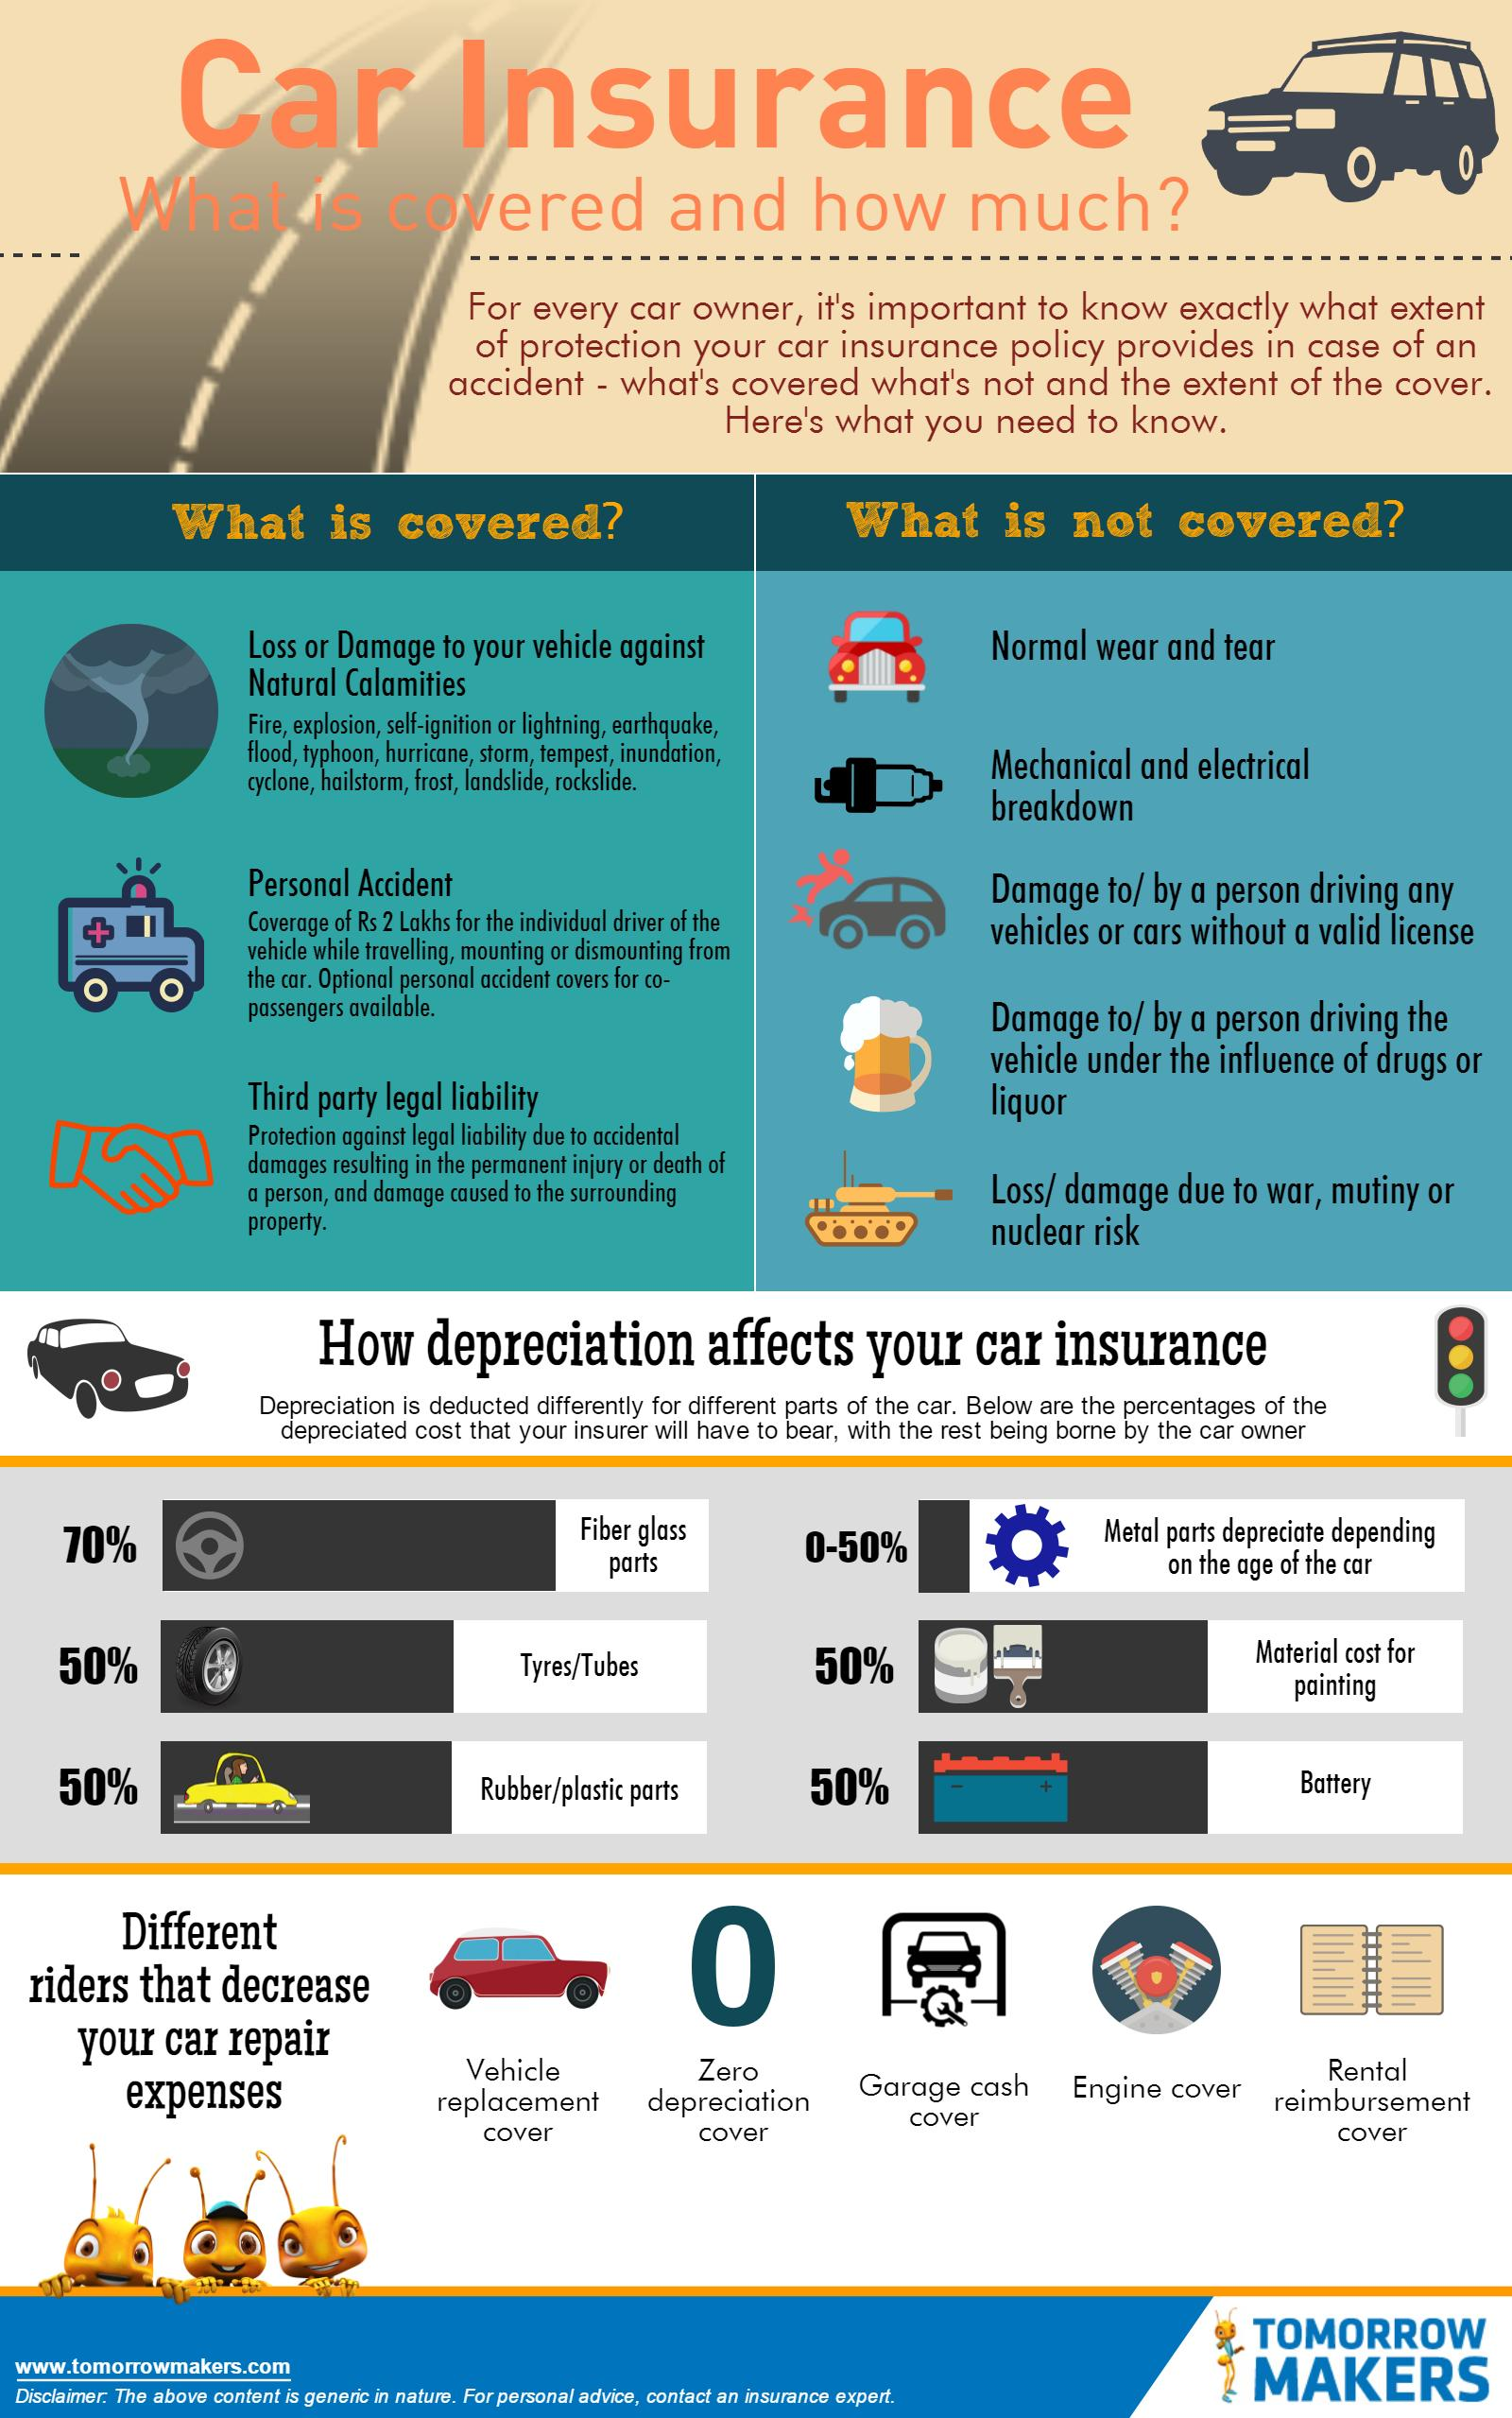 car-insurance-what-is-covered-and-how-much